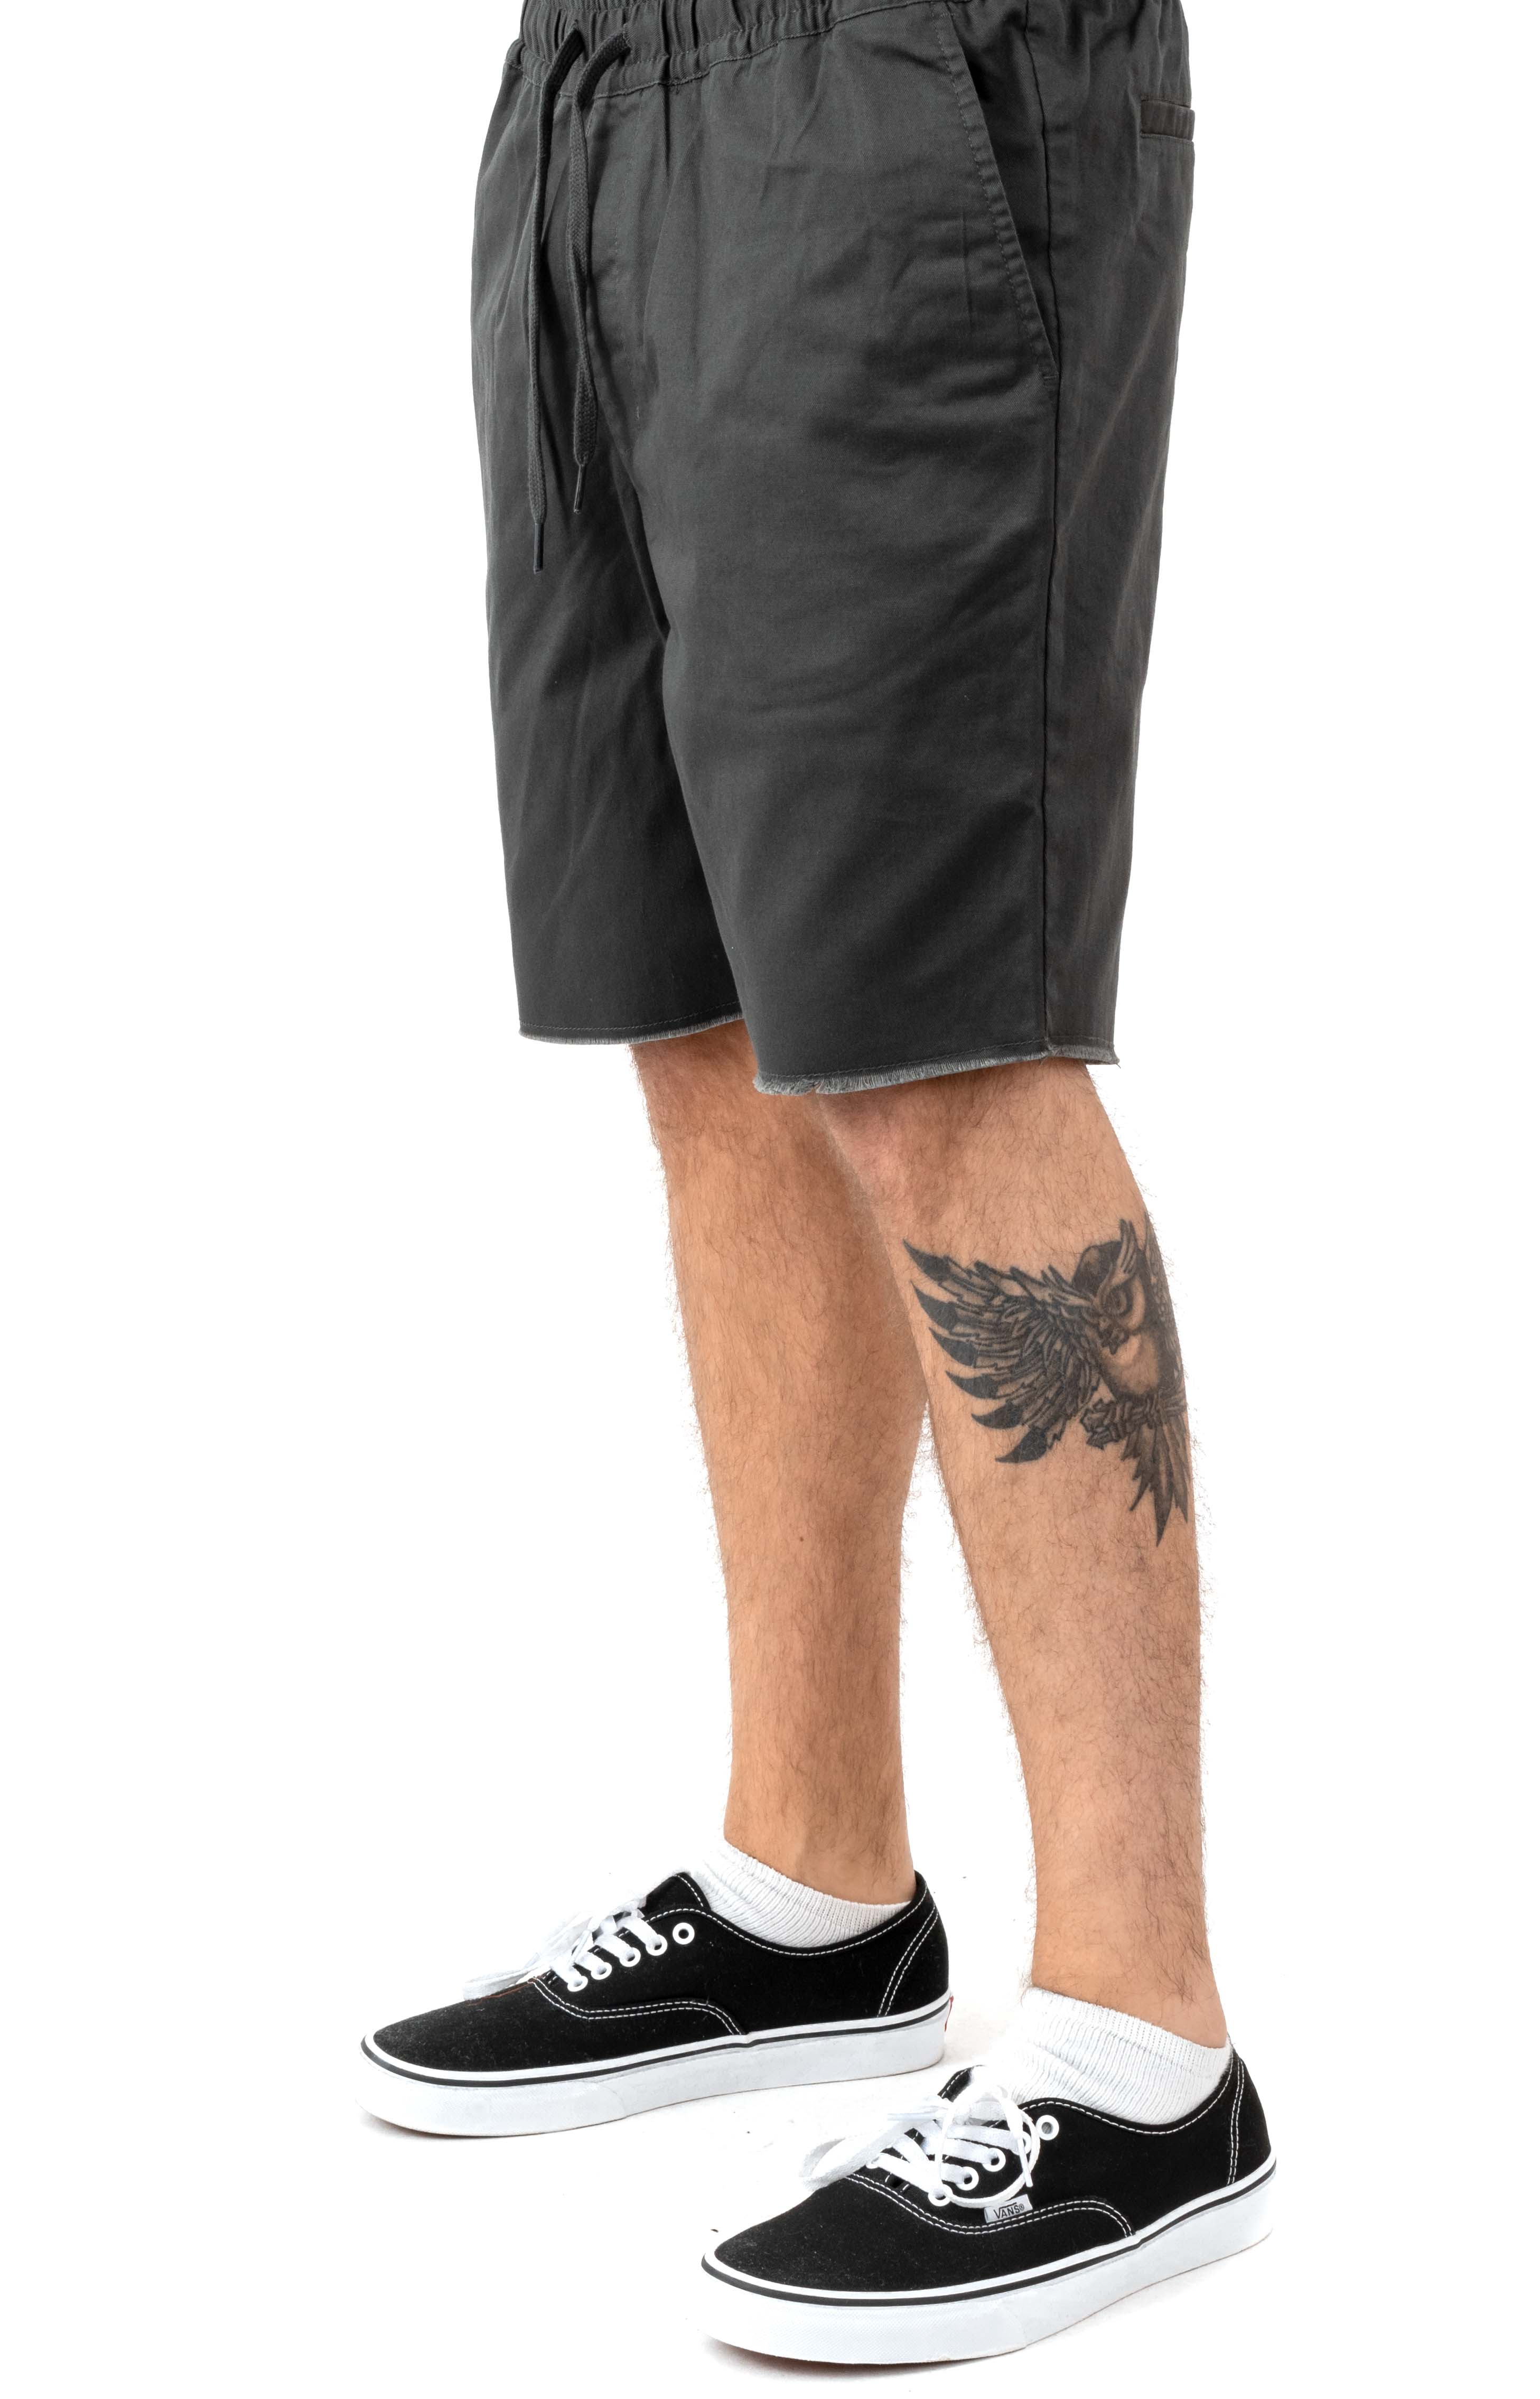 Weekend Elastic Shorts - Pirate Black